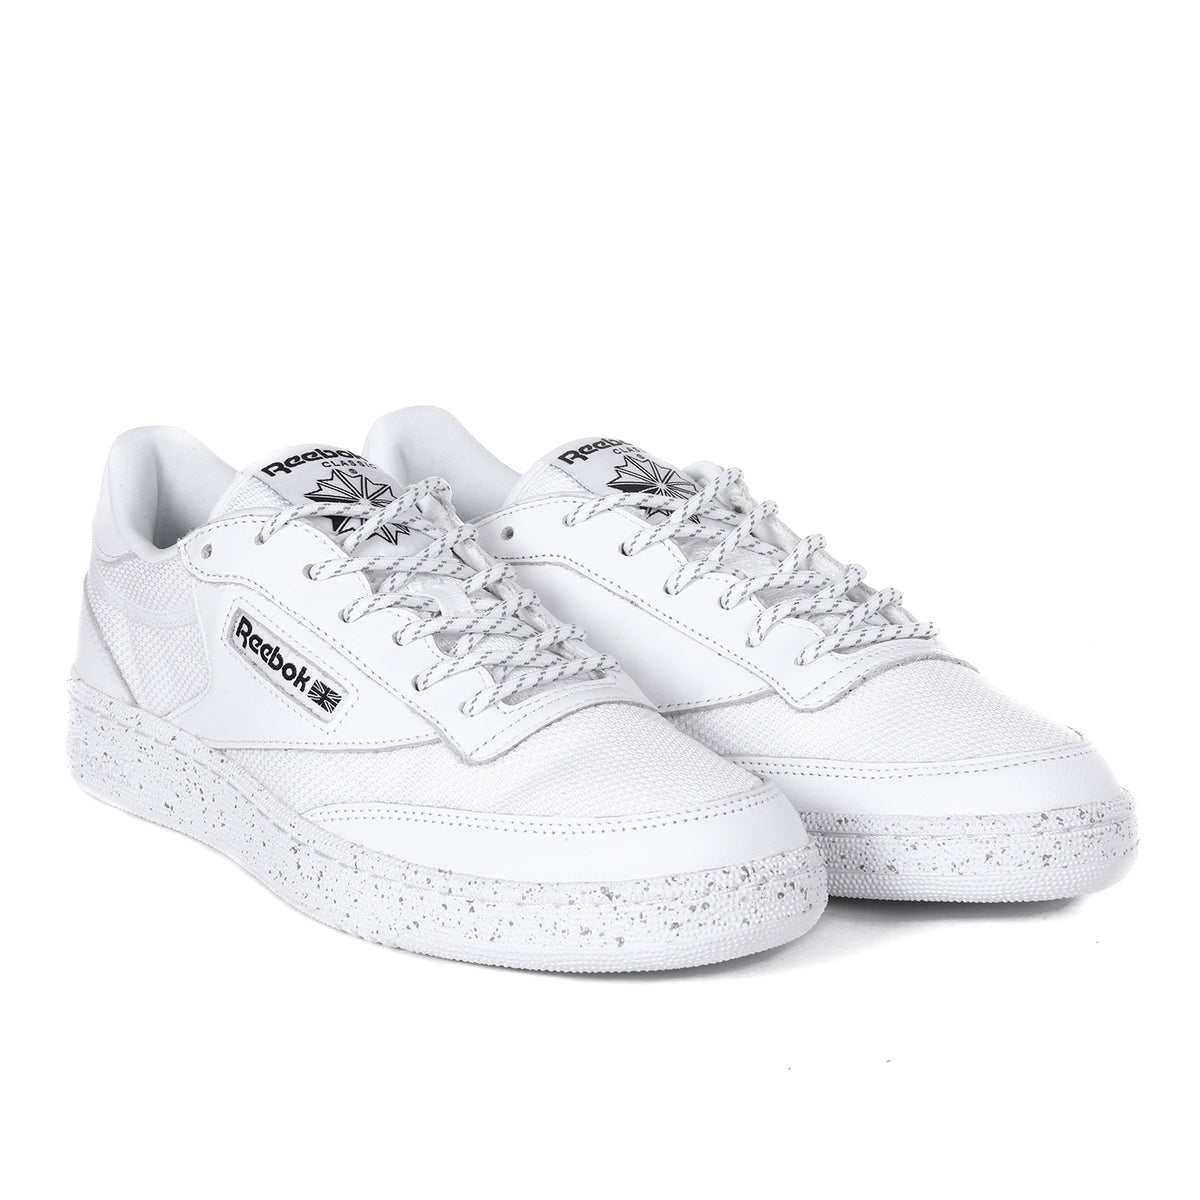 REEBOK - CLUB C 85 ST - WHITE